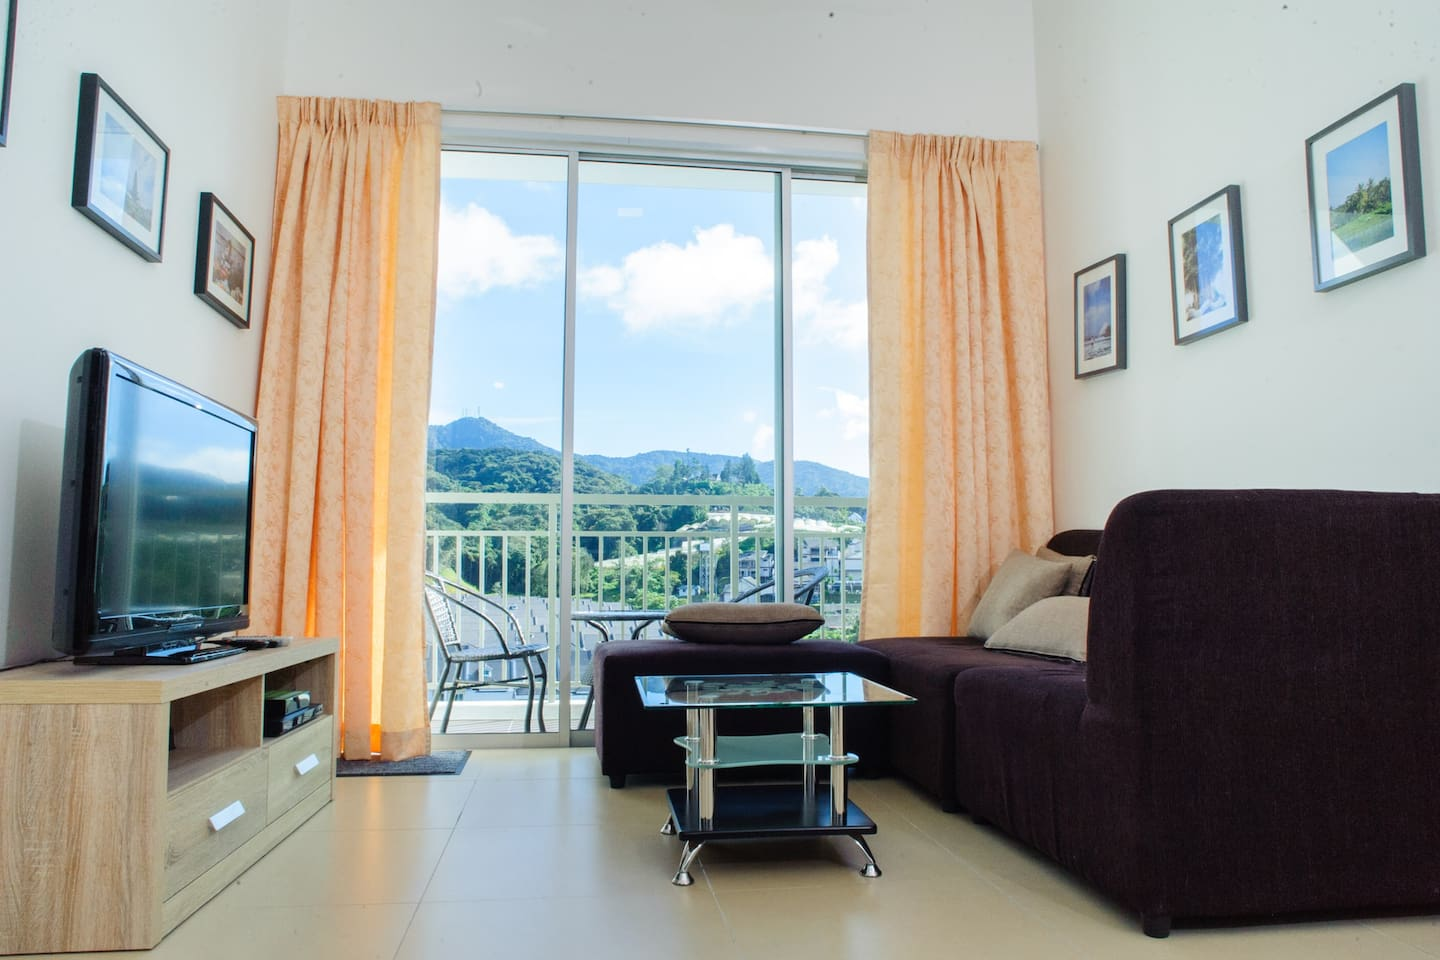 Comfort & location @ The Lotus, Cameron Highlands - Apartments for ...